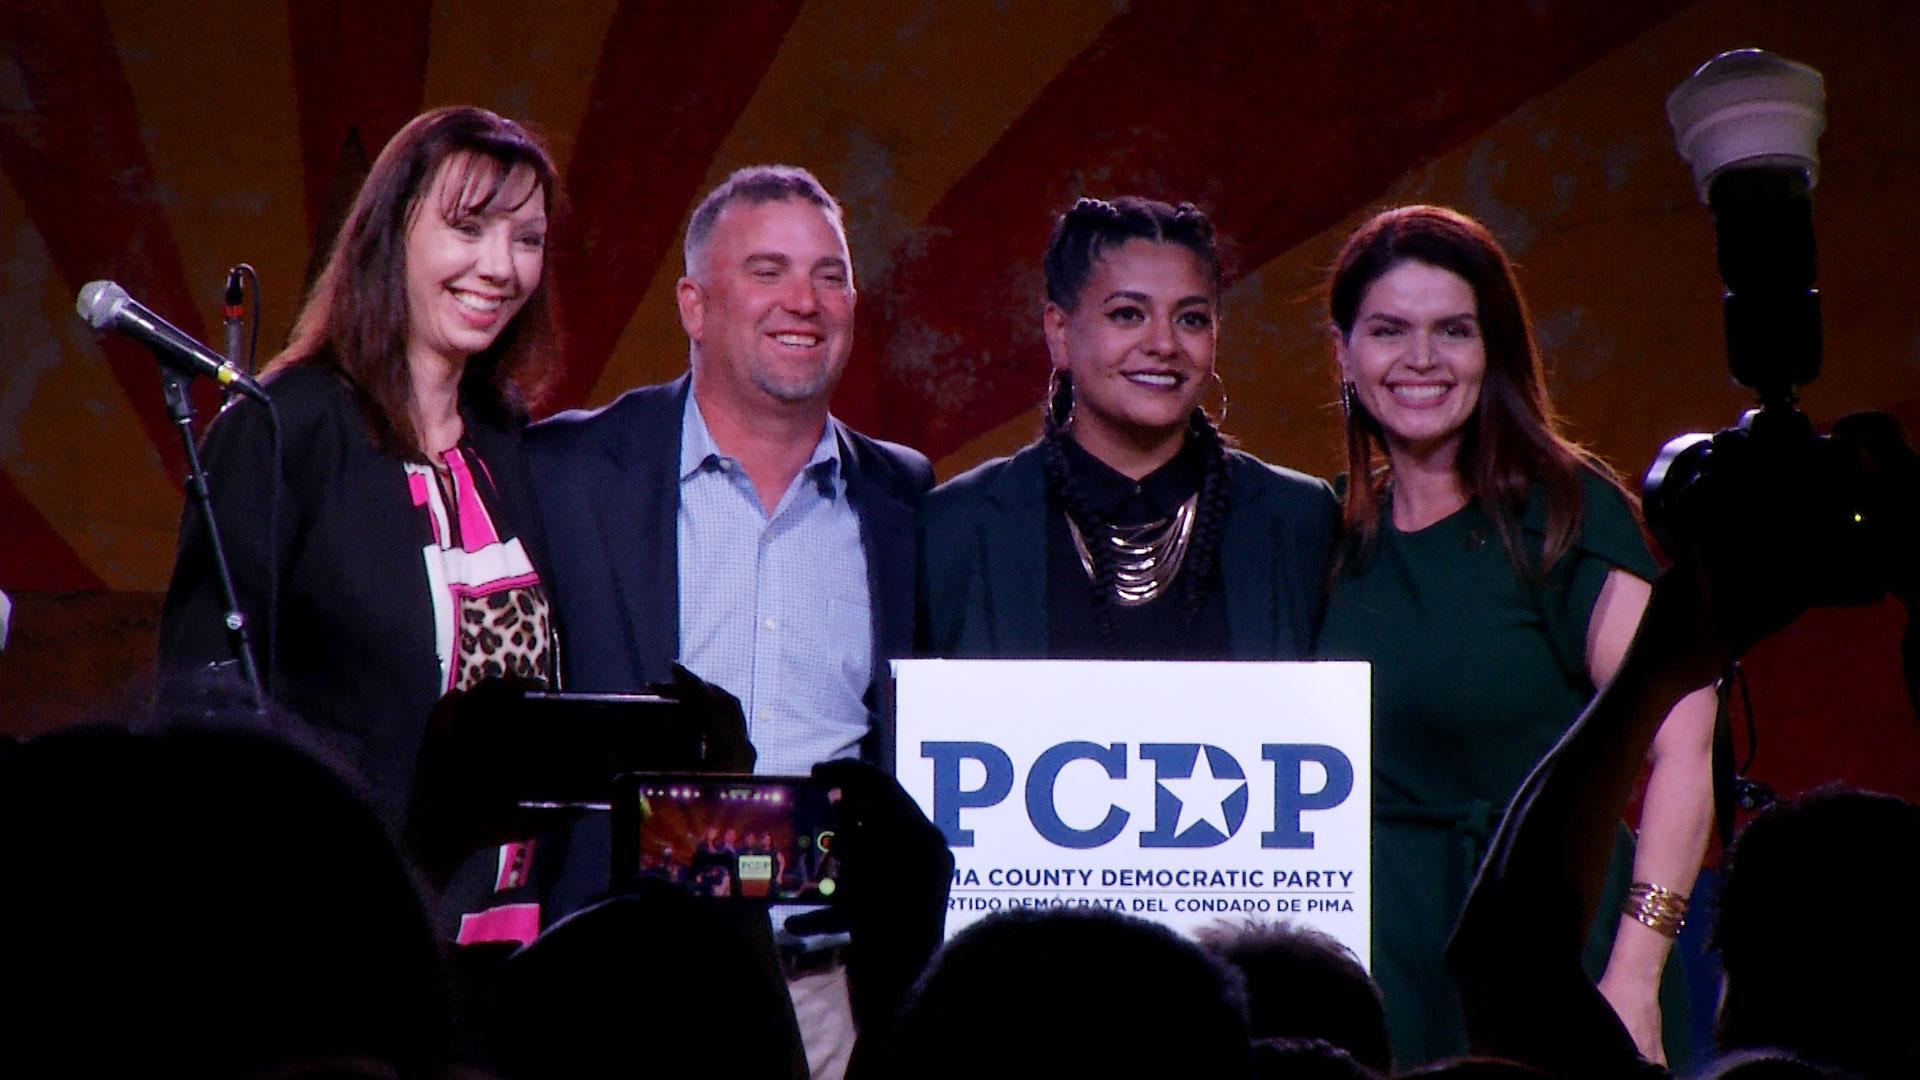 From left: Nikki Lee, Paul Cunningham, Lane Santa Cruz and Regina Romero pose for a photo during an election night party at Hotel Congress on November 5, 2019. All four Democrats won their respective races.